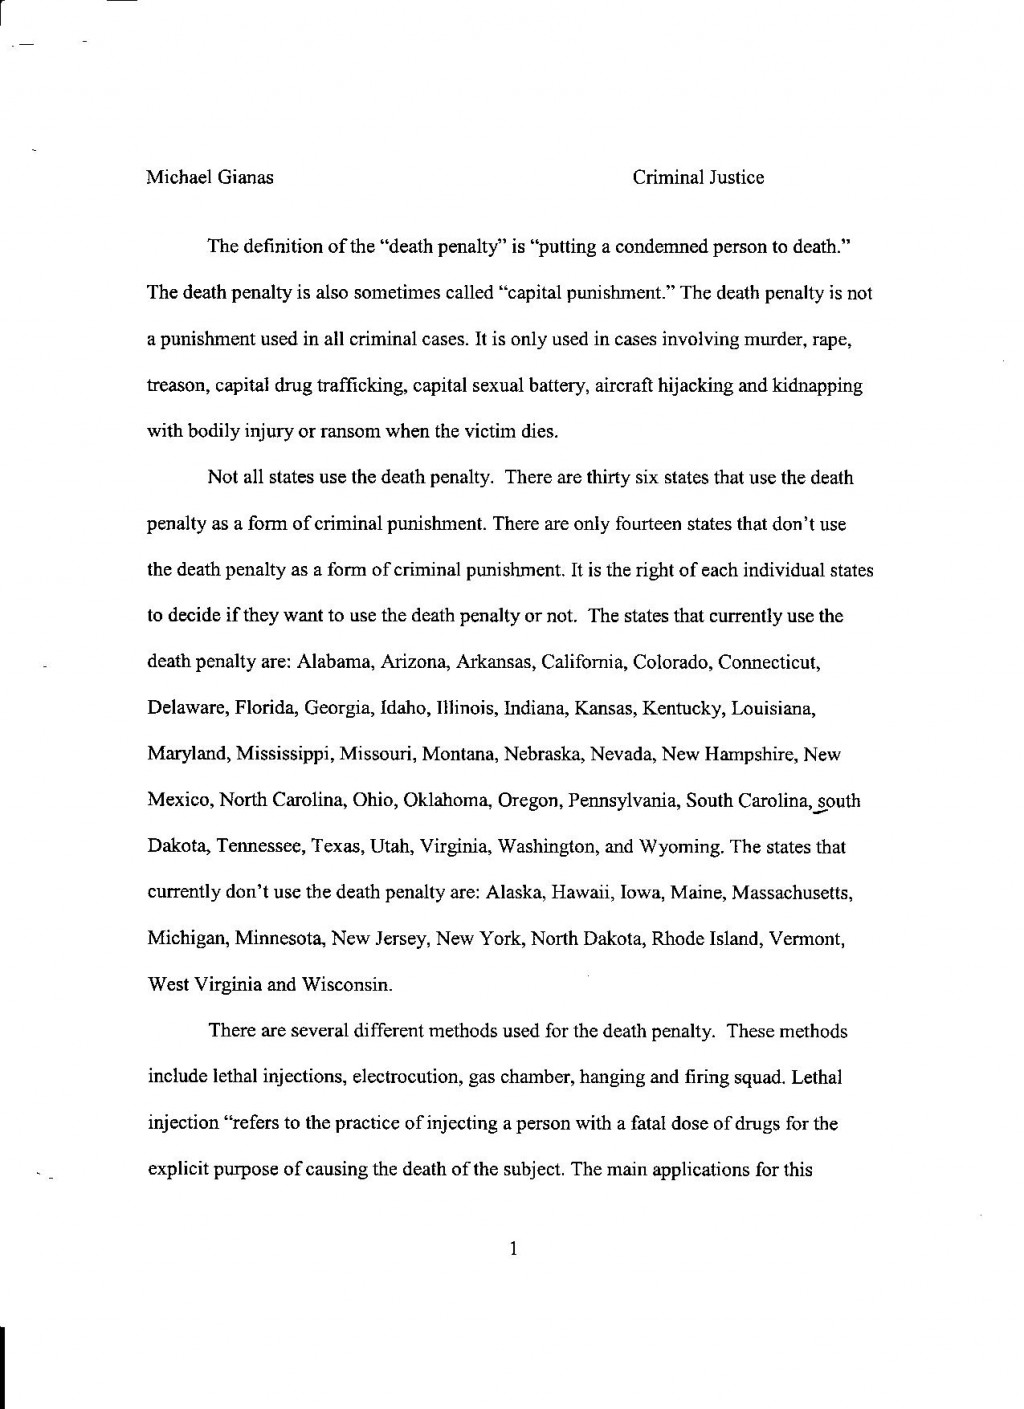 006 Death Penalty Pg Research Rare Paper In The Philippines Pdf Outline Titles Large